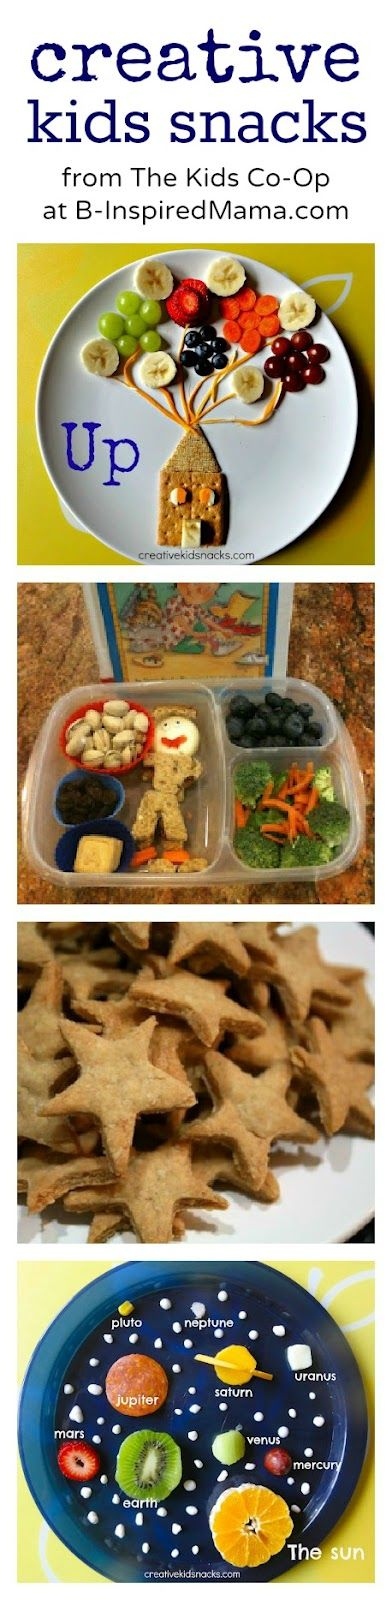 Check out these creative lunch ideas from the mamas of the Kids Co-Op at B-InspiredMama.com!